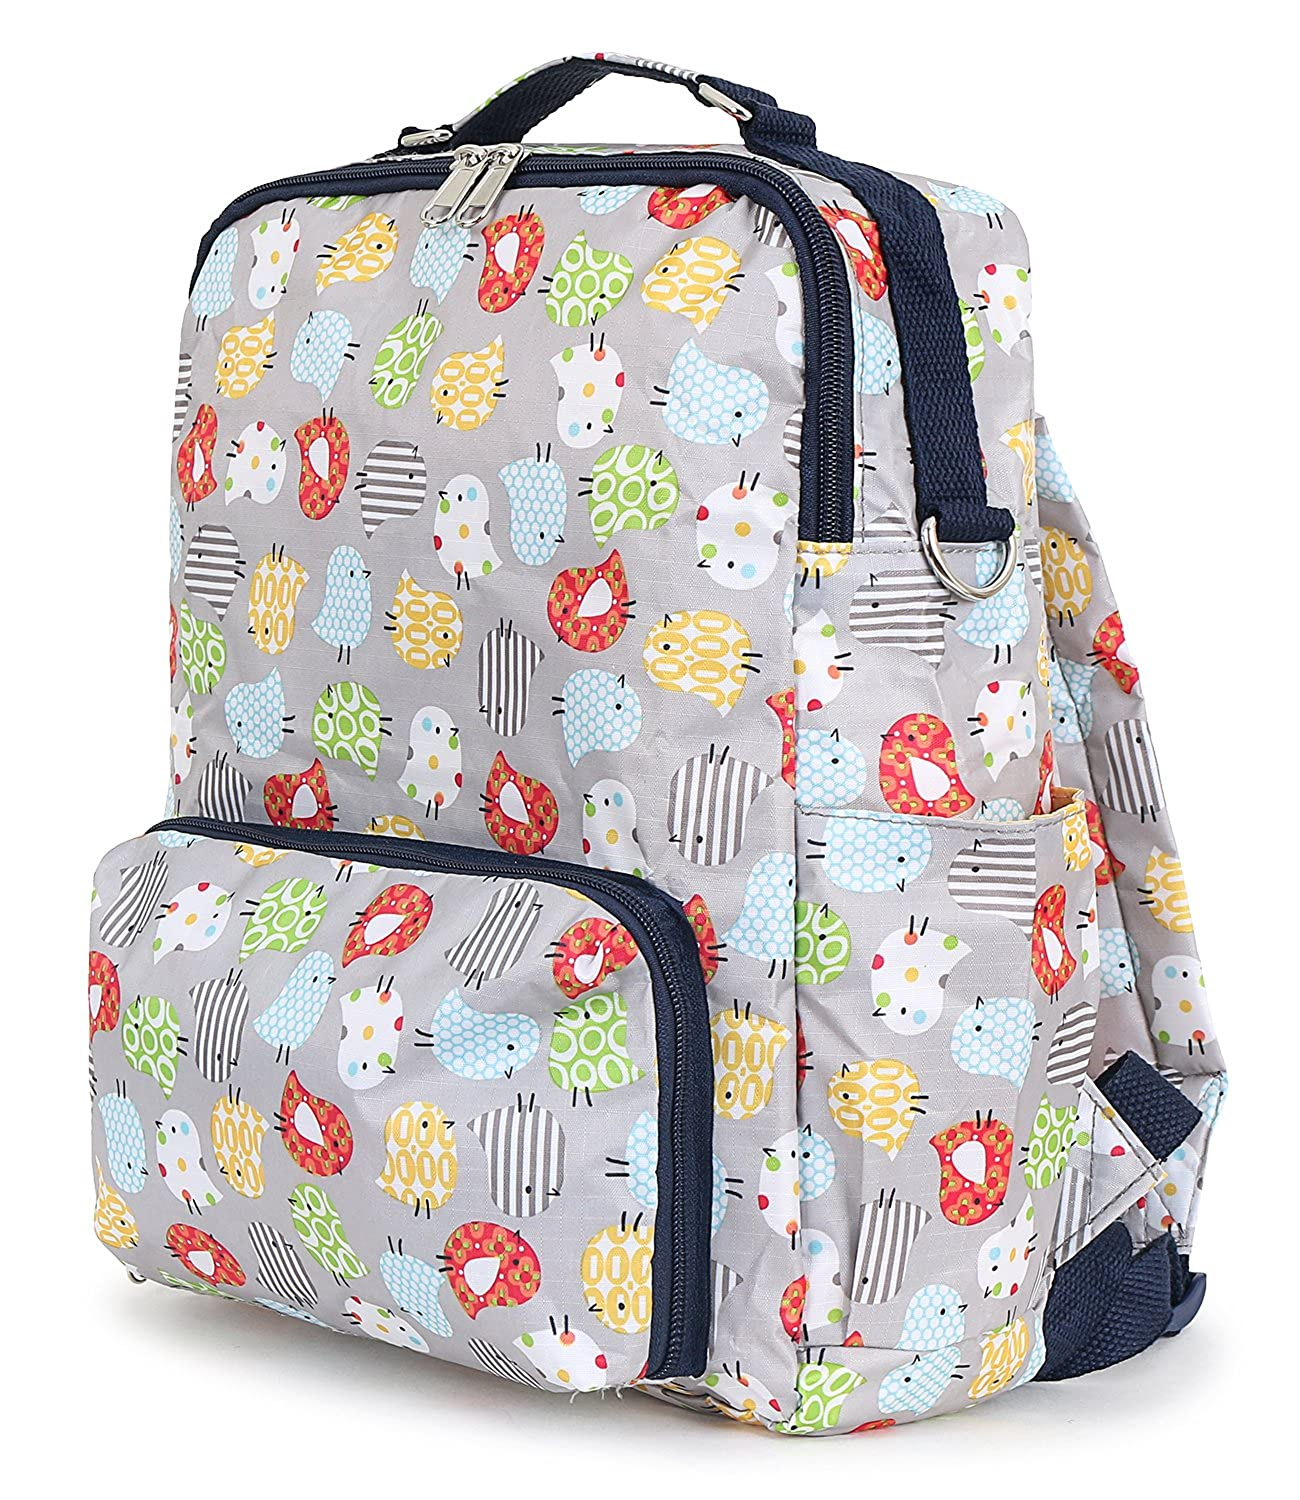 23a433ea5f Amazon.com  ililily Pattern Lightweight Folded Backpack Small Casual Day  Pack